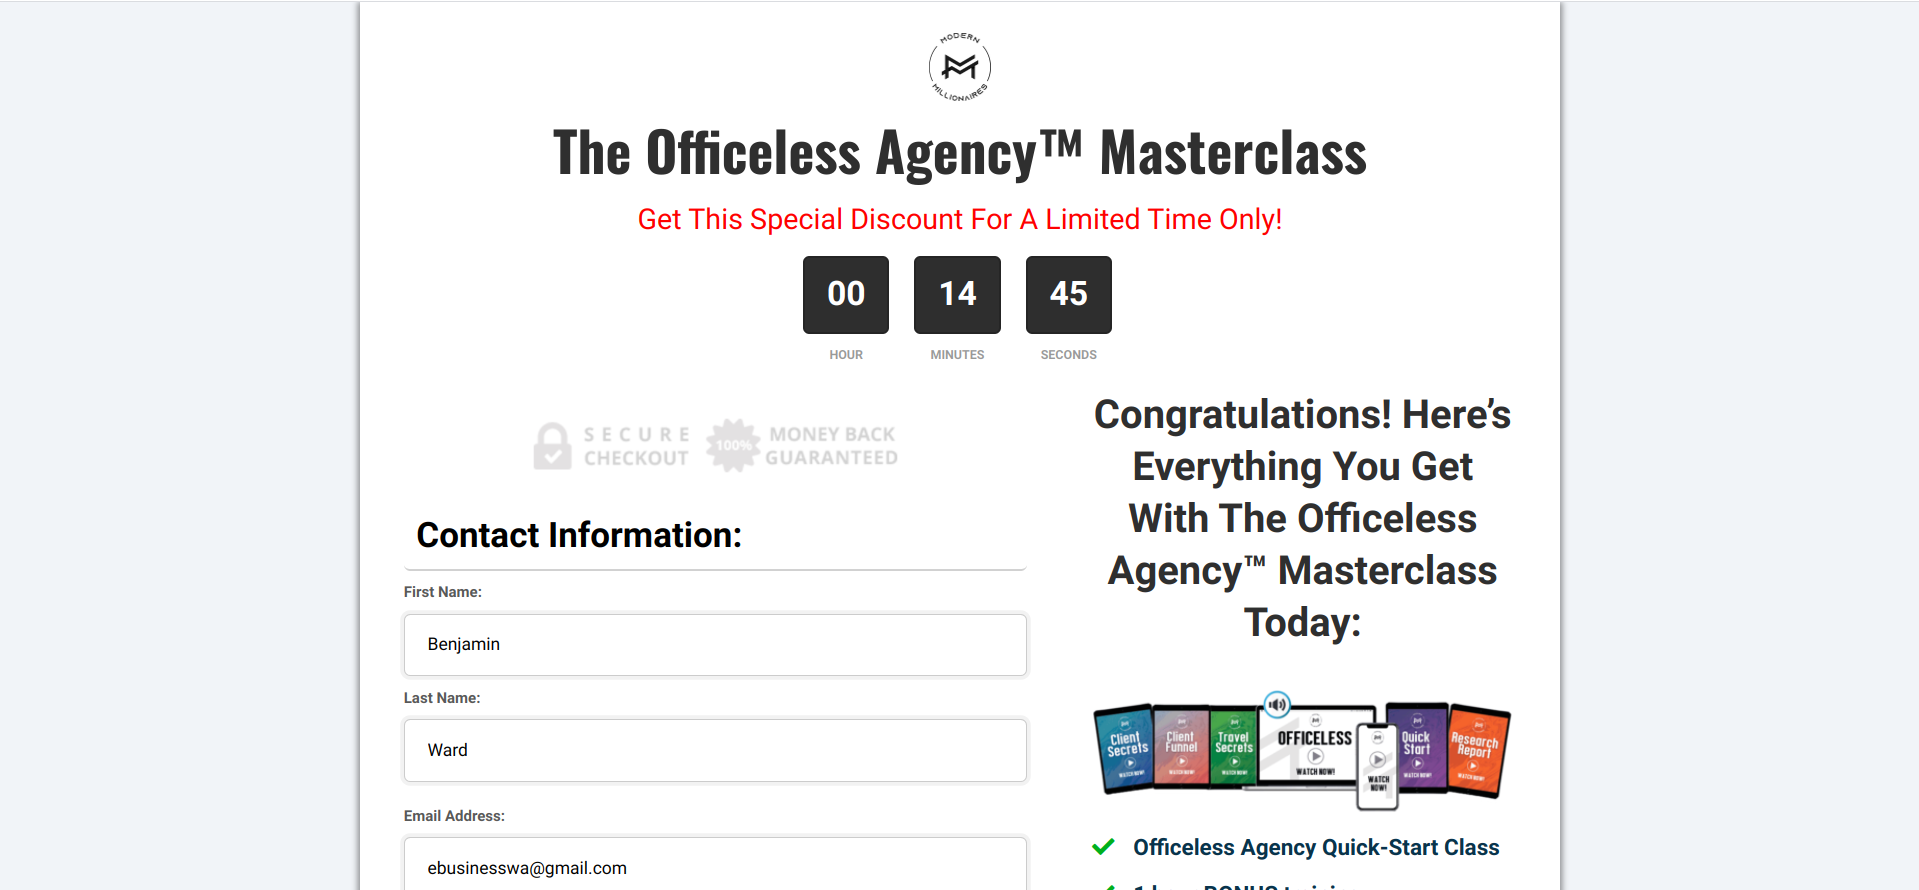 Is Officeless Agency Masterclass a Scam or Legit